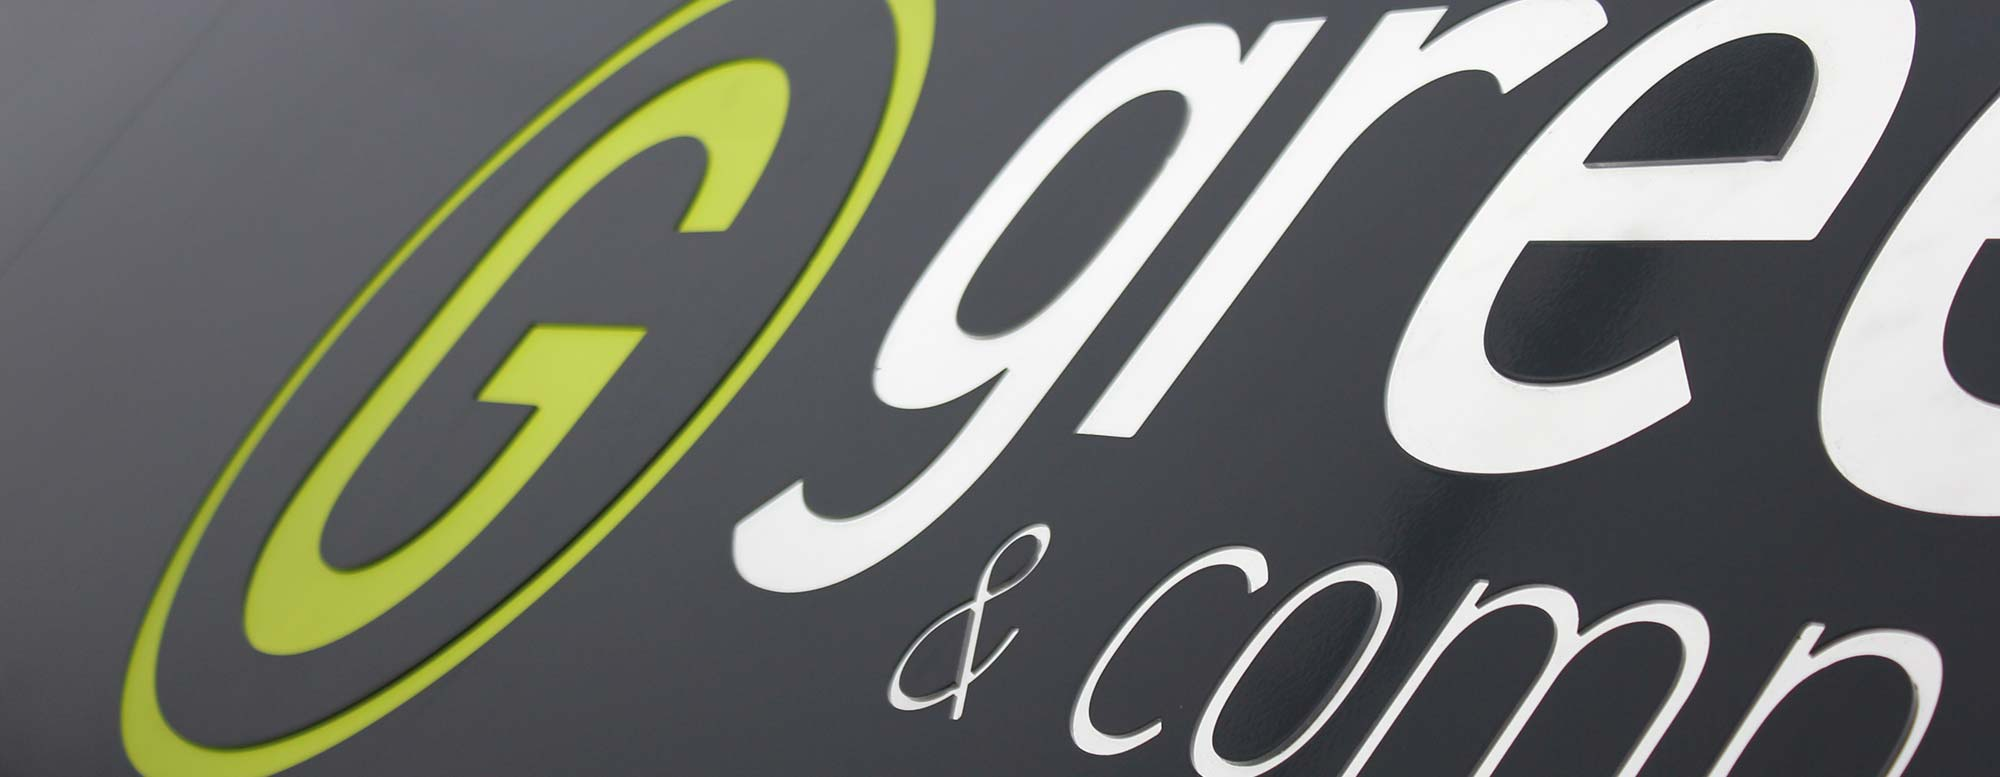 Green-co-sign